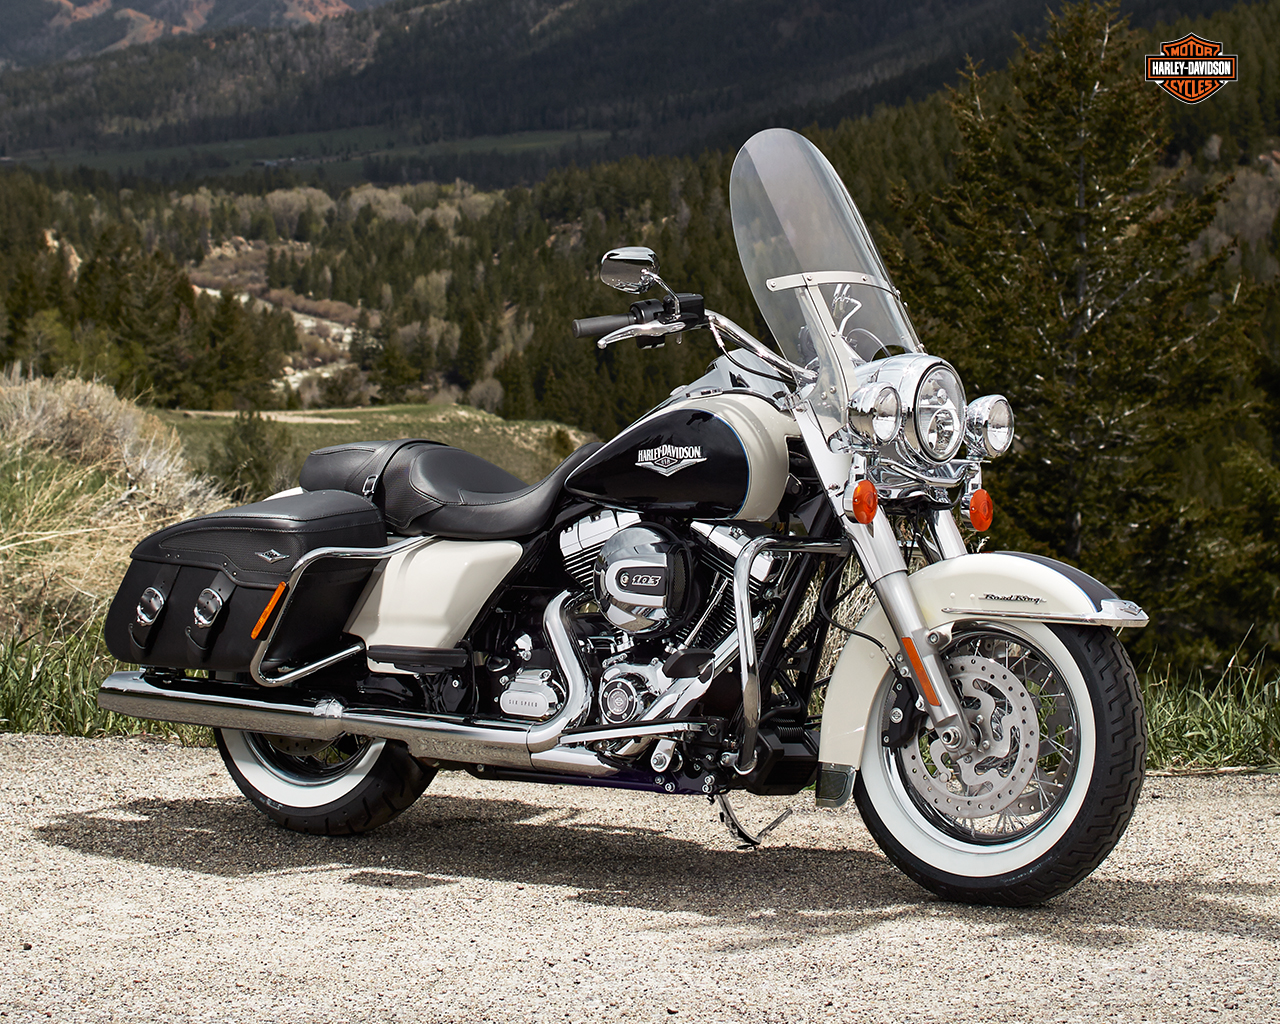 harley-davidson wallpaper (harley-davidson Touring Road King Classic)